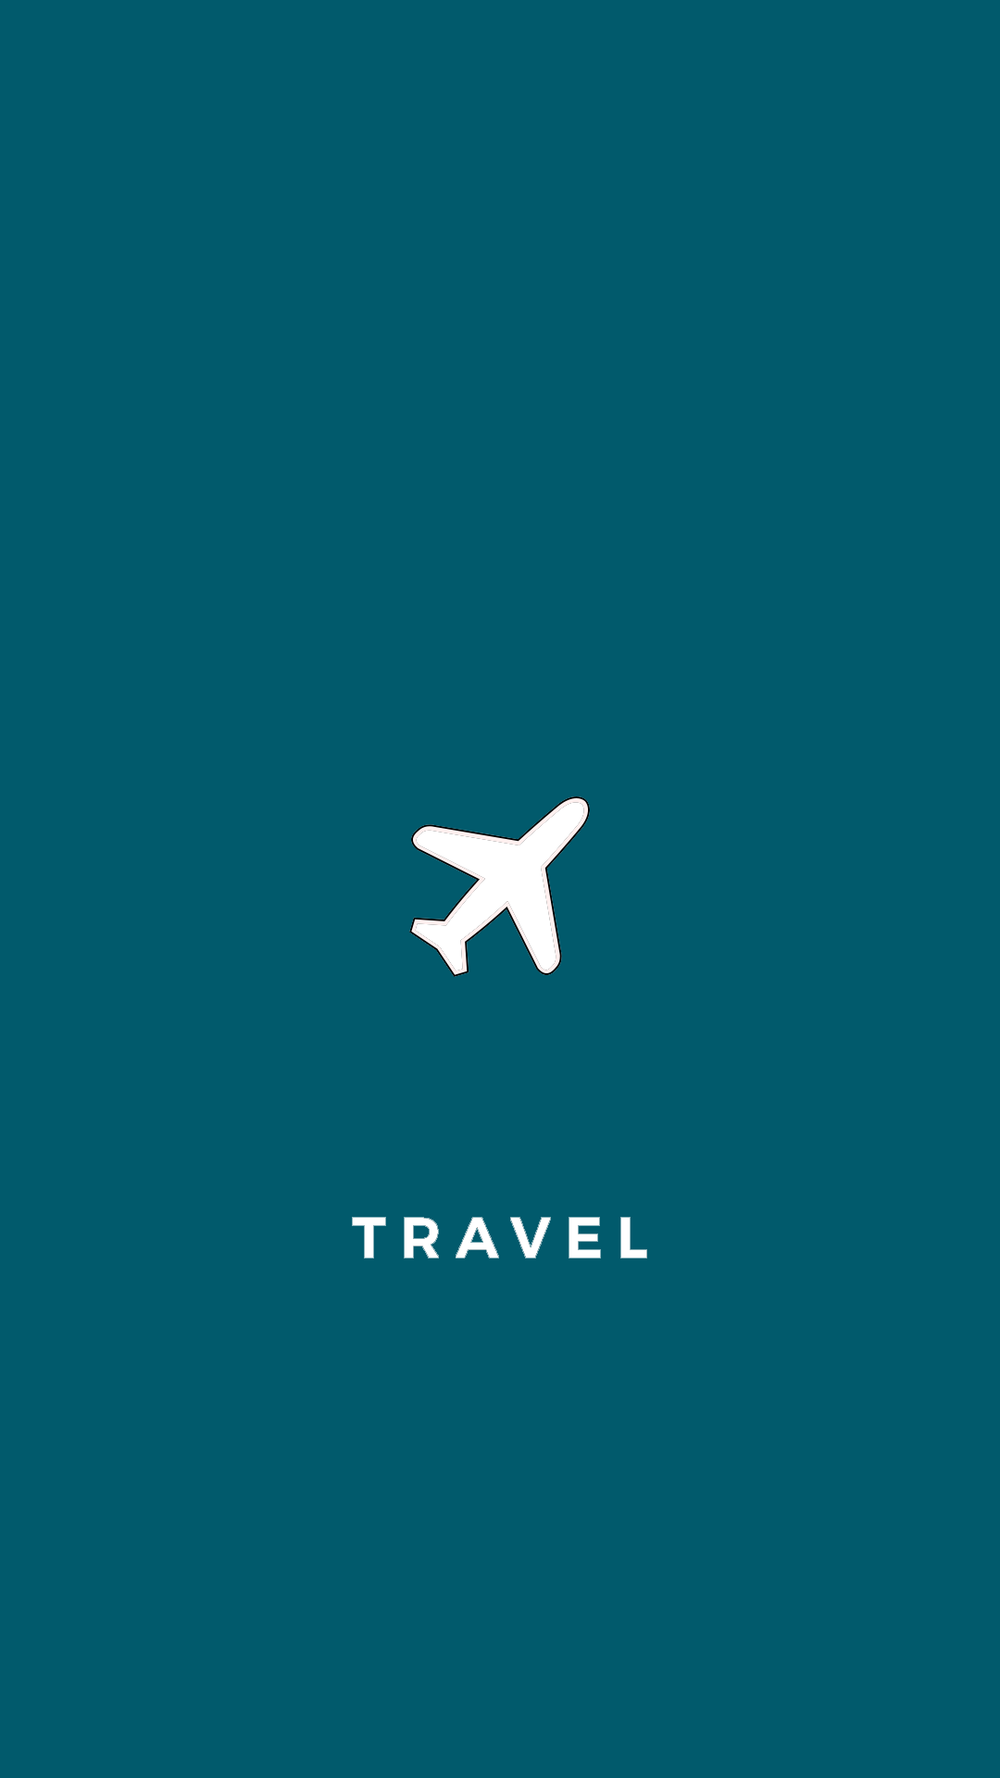 InstagramStoryCover-Travel.png